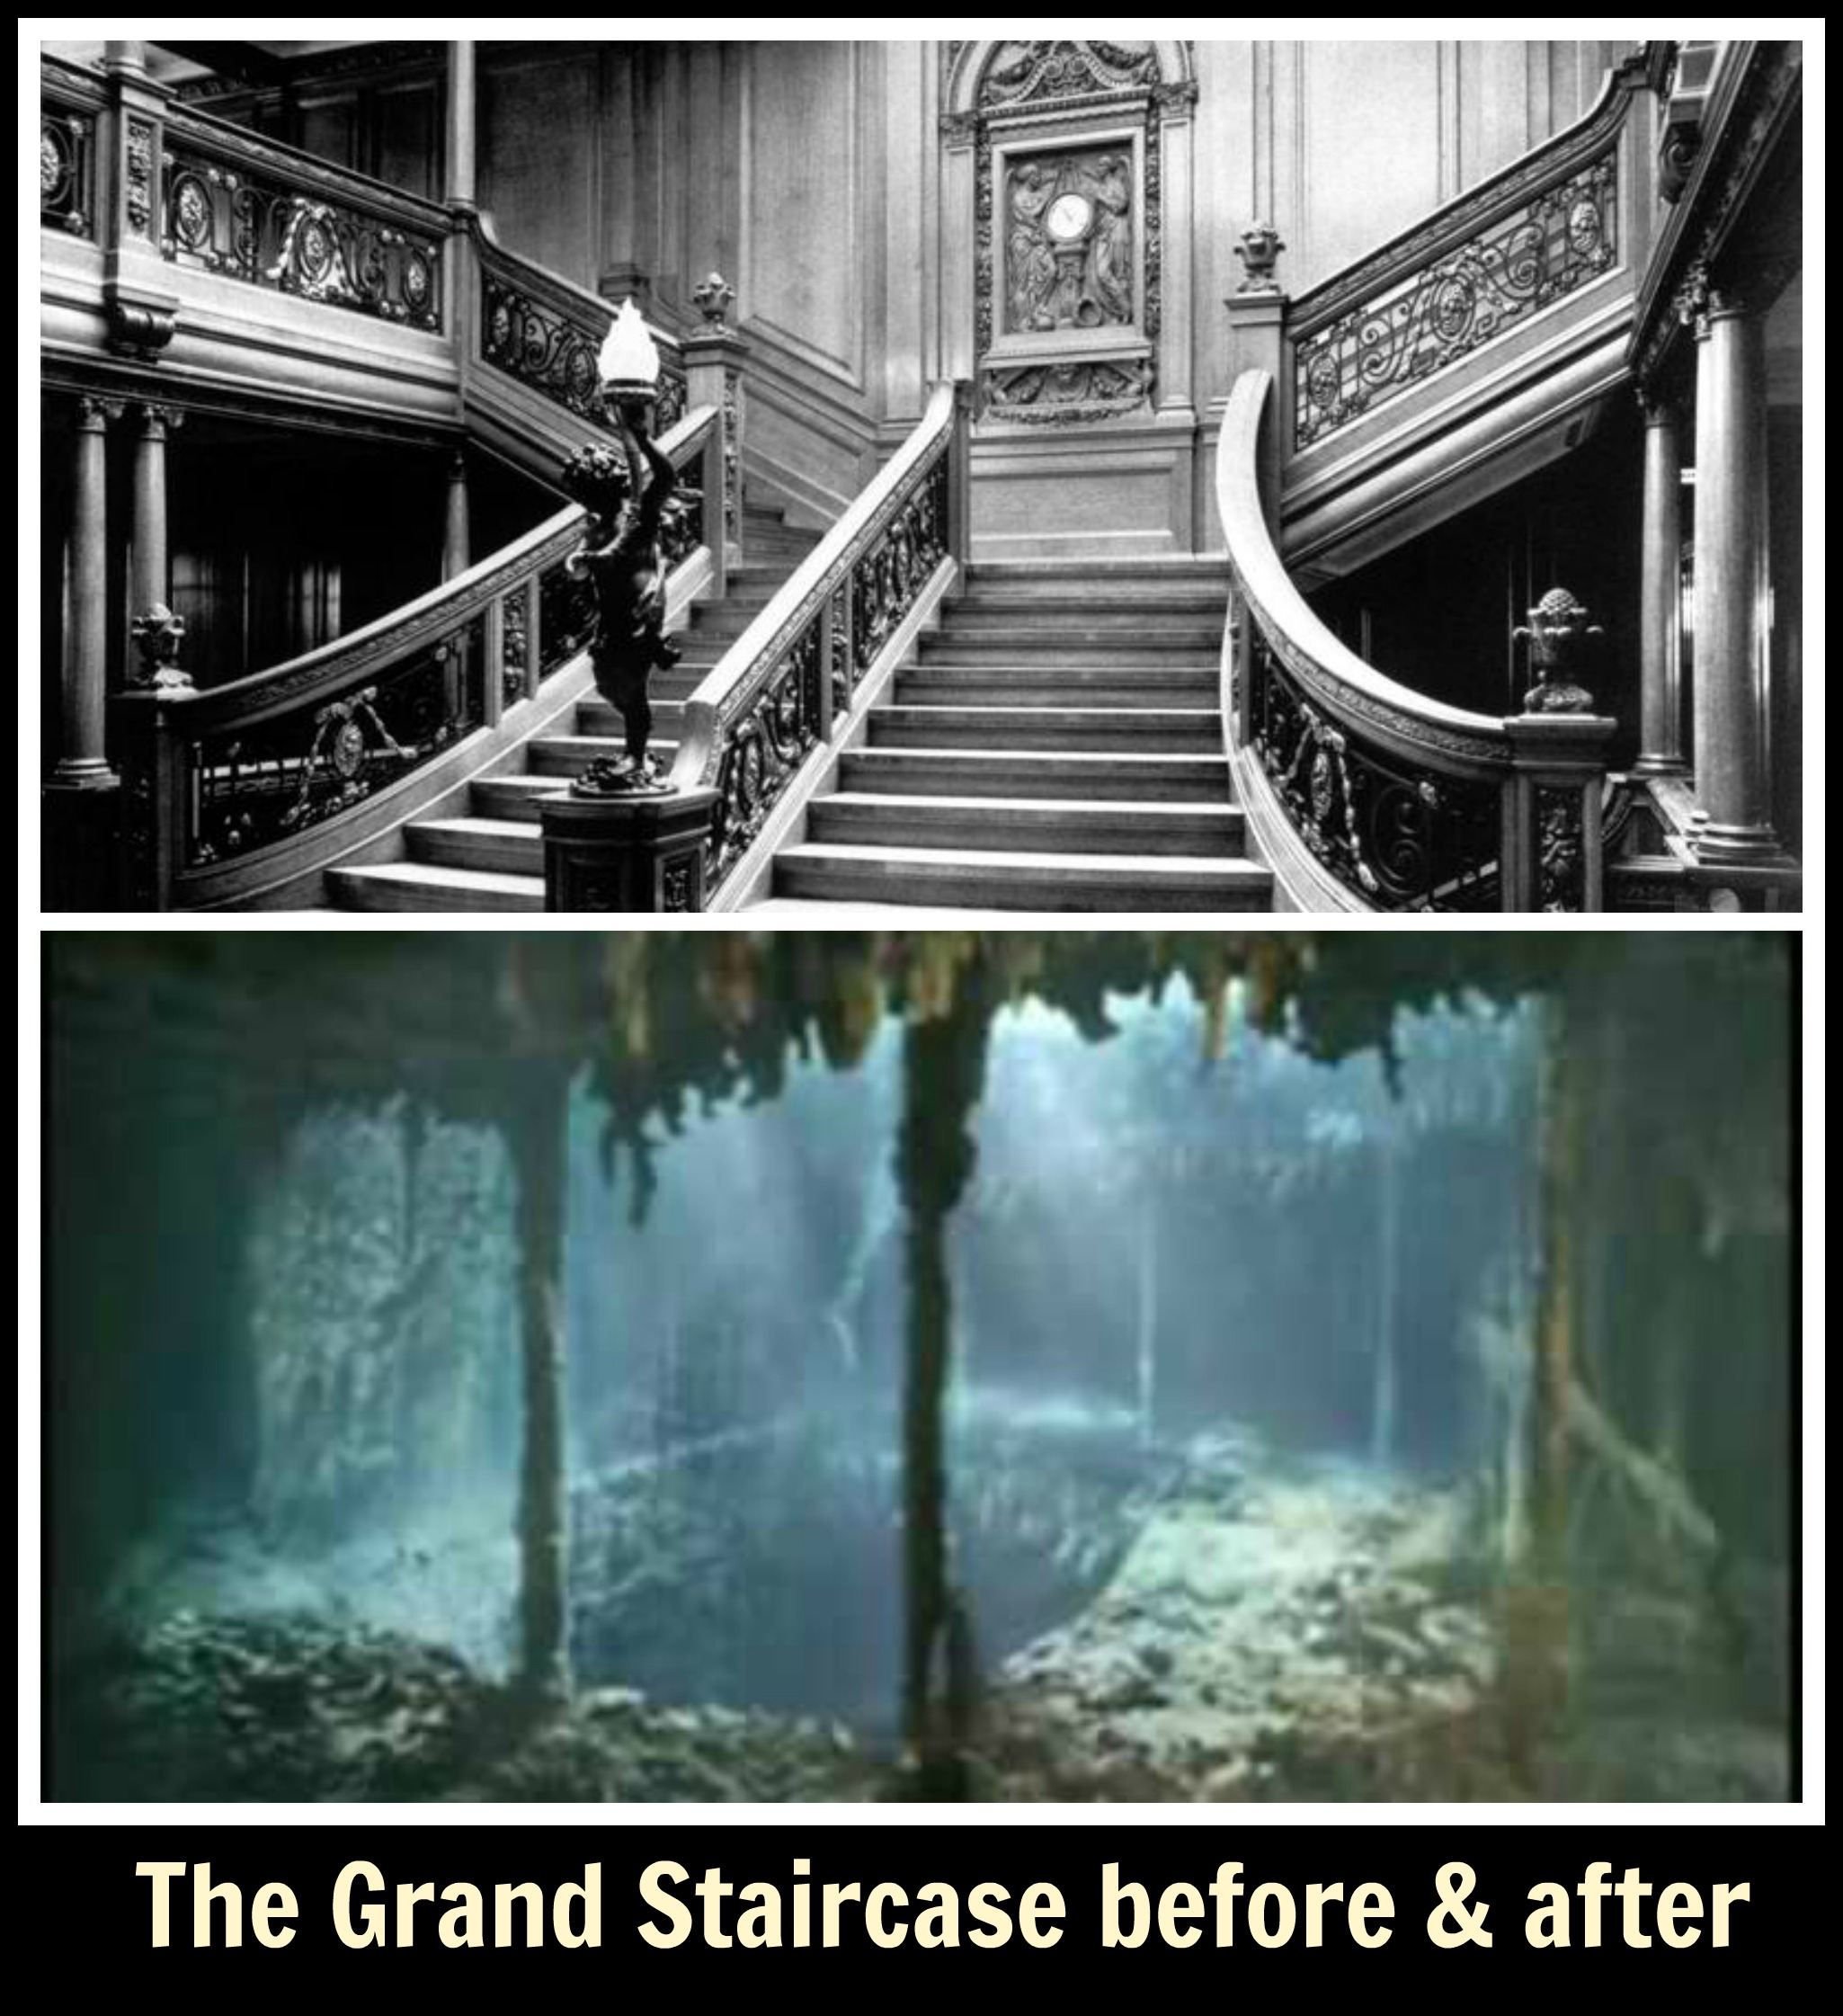 titanic grand staircase collage text.jpg